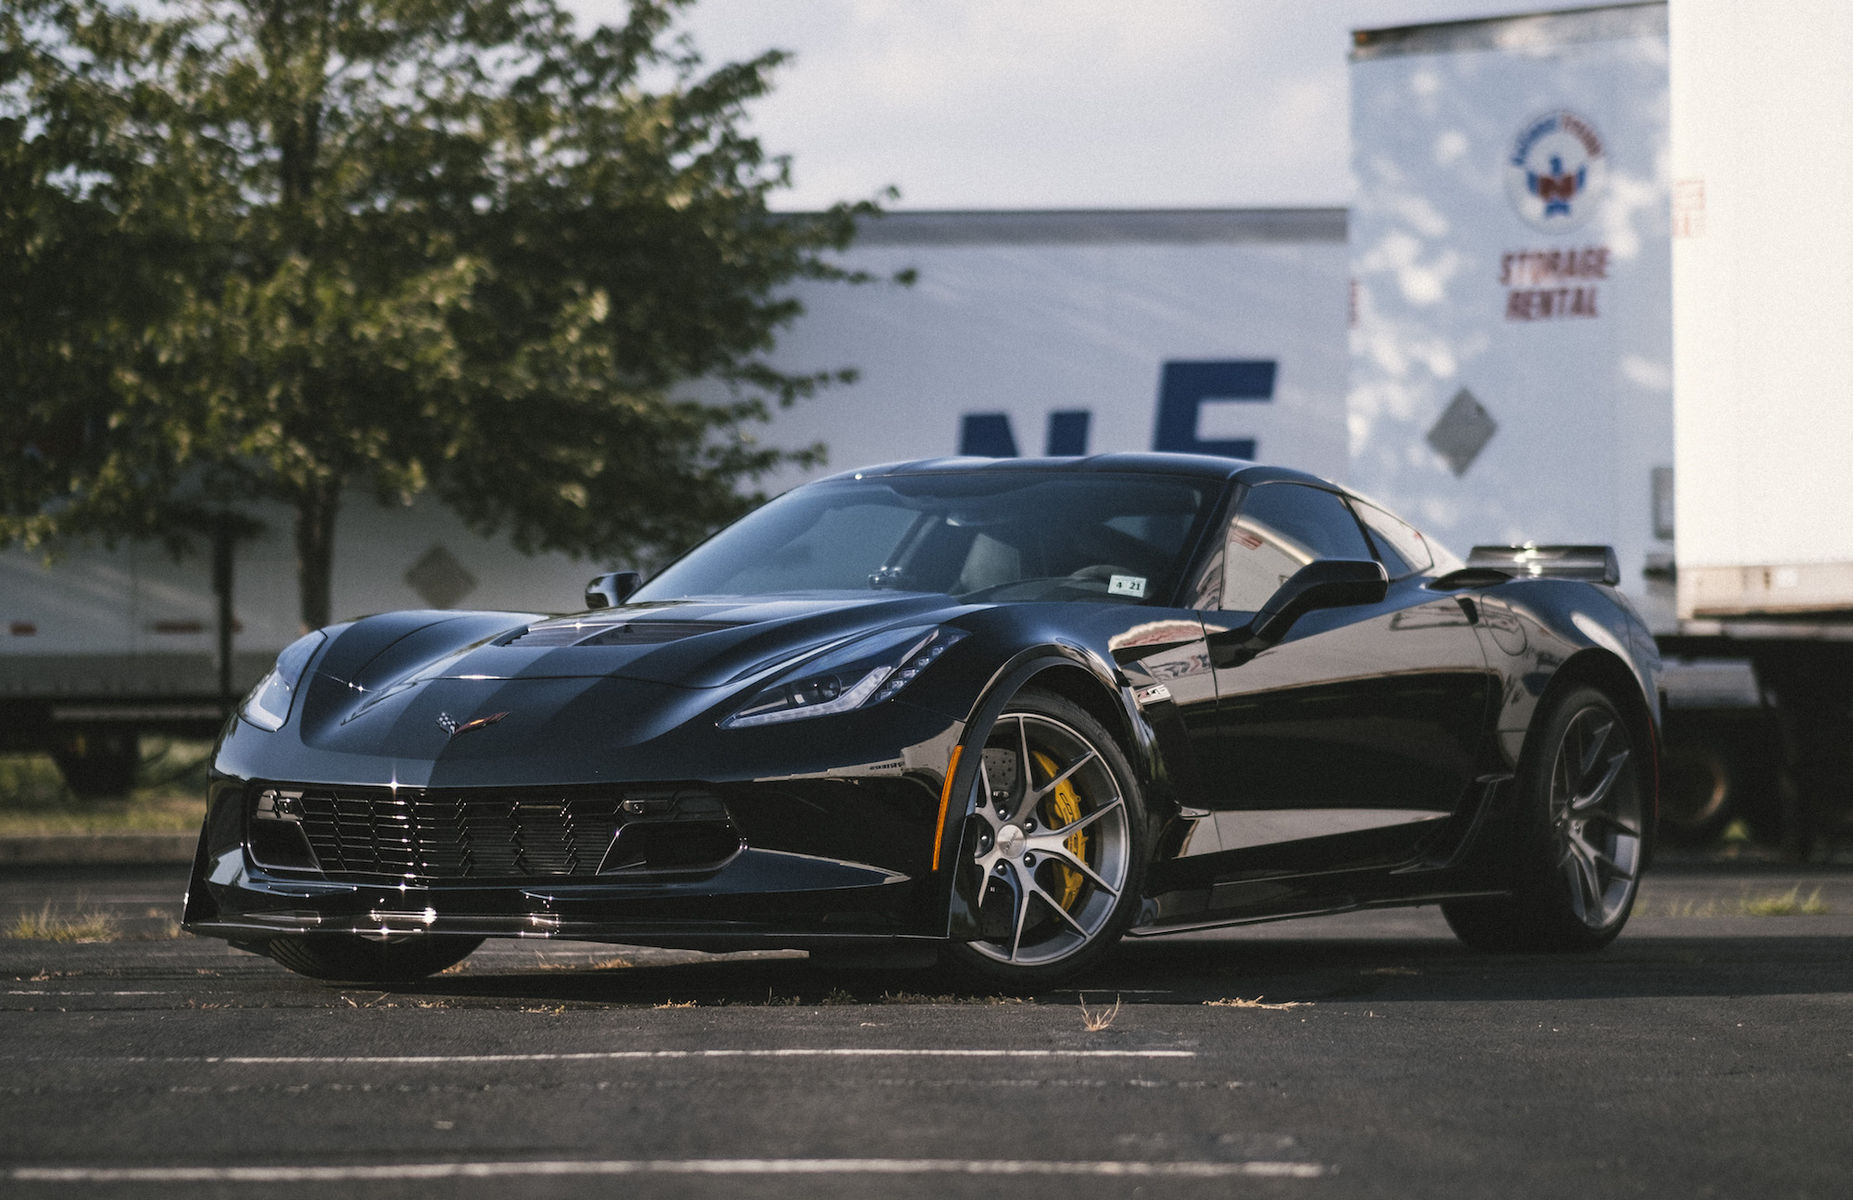 2016 Chevrolet Corvette Z06 | Gerry Corbo's C7.R C7 Corvette Z06 on Forgeline One Piece Forged Monoblock VX1 Wheels